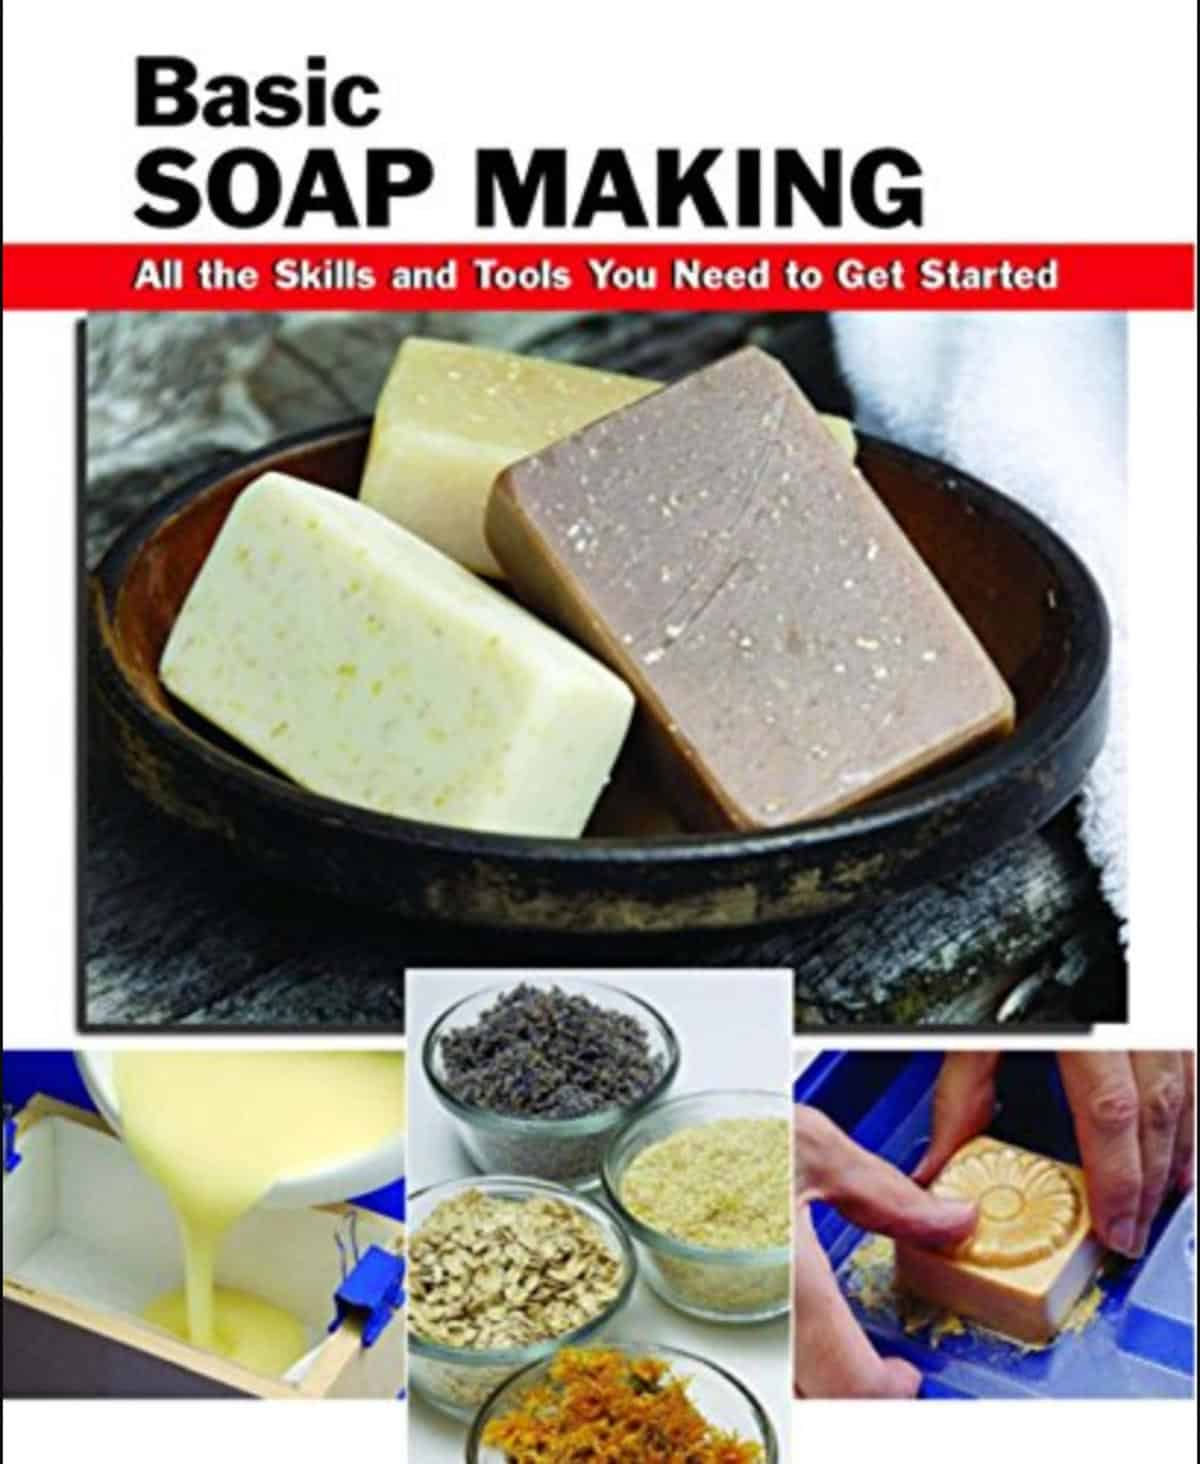 basic soap making book cover on amazon with 3 bars of soap in a bowl